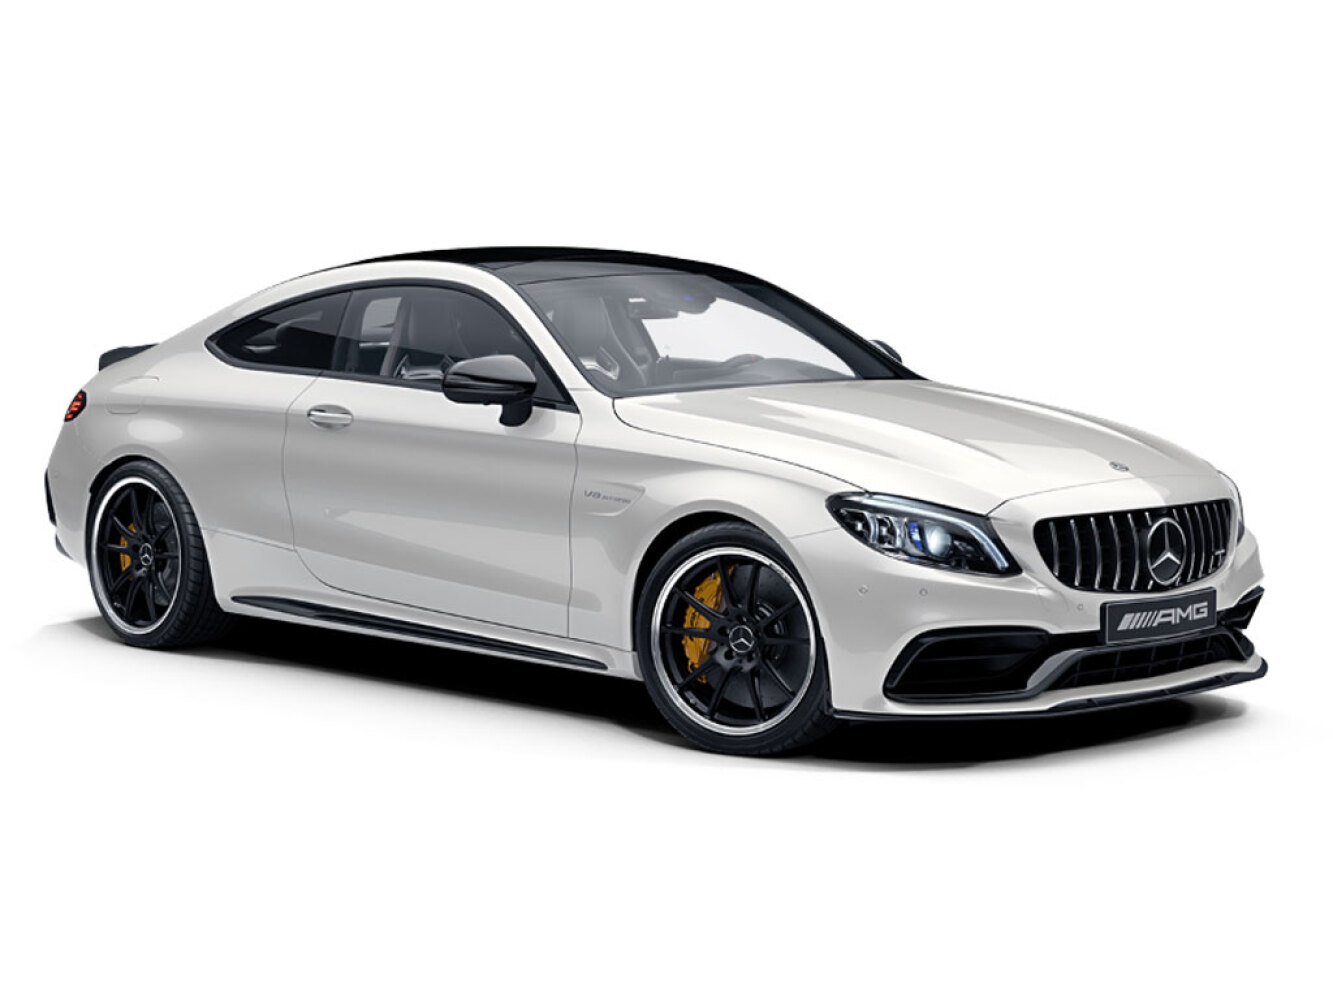 New Mercedes Amg C Cl C63 S 2dr 9g Tronic Petrol Coupe For Vertu Benz